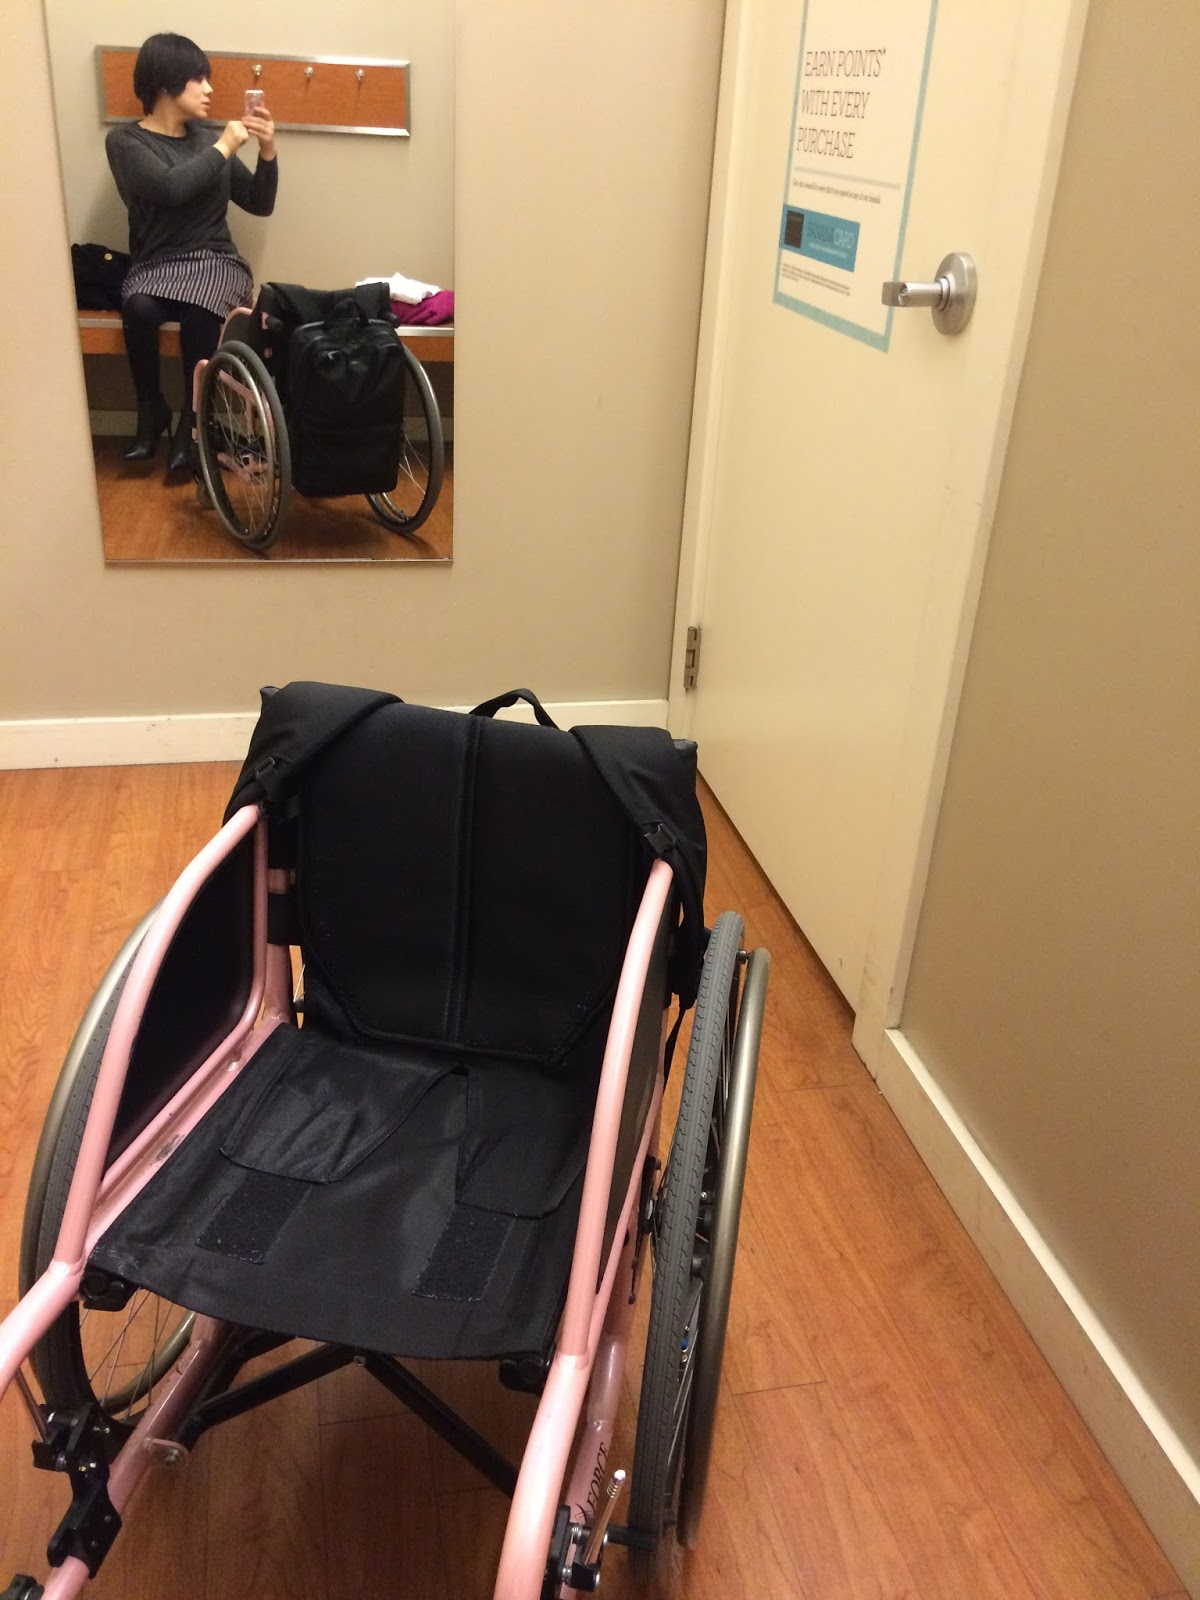 Awesome Fitting Room For Wheelchair Users in the U.S.